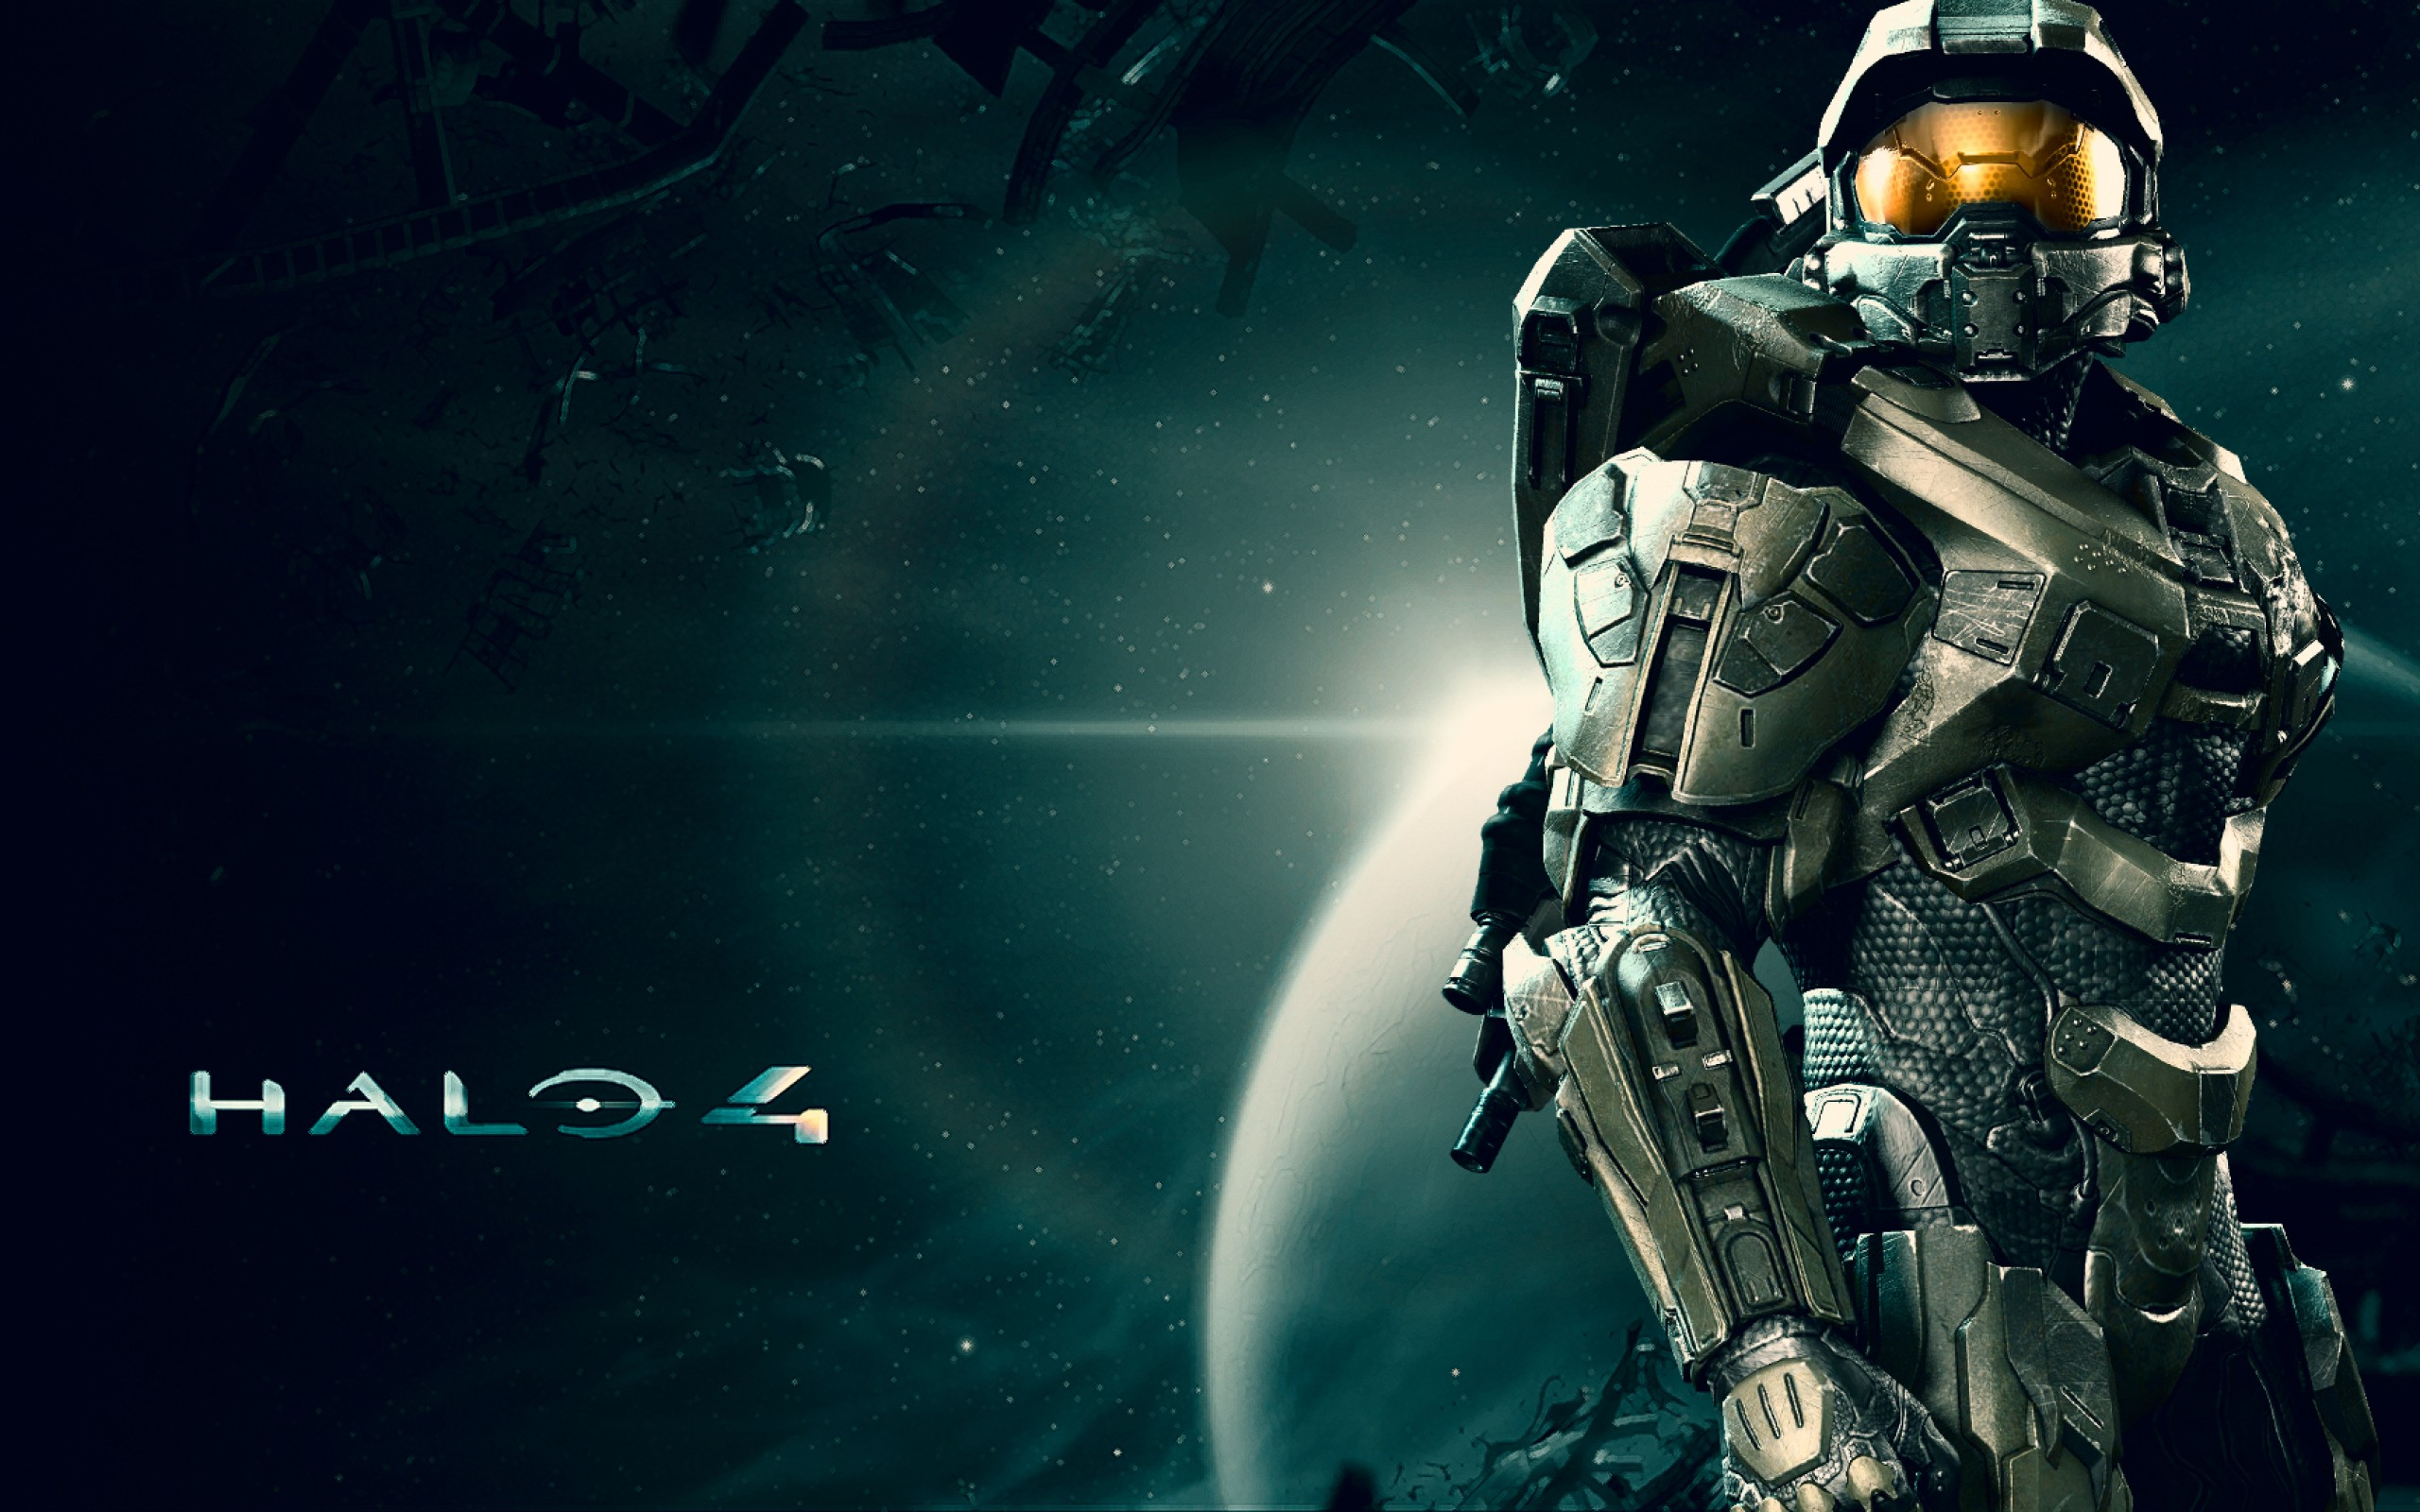 92 Halo 4 HD Wallpapers Background Images 2560x1600